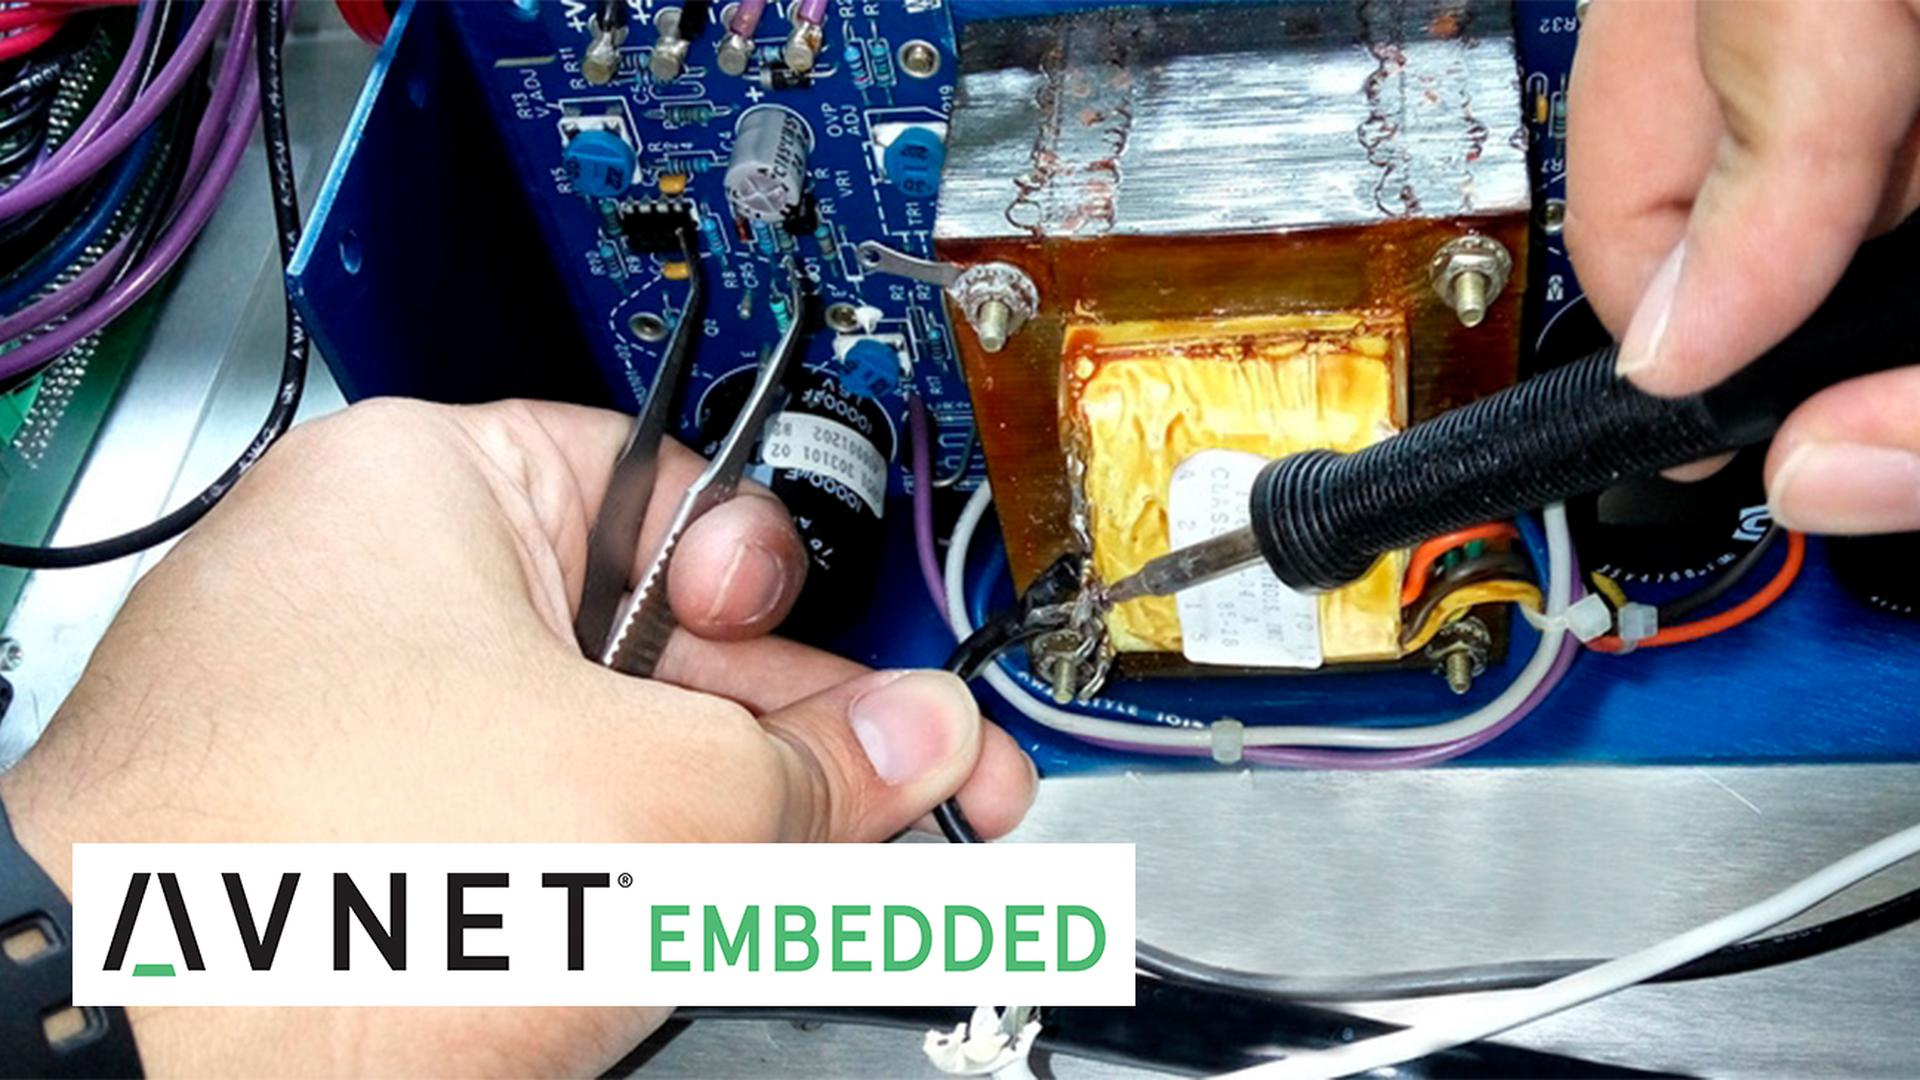 Rapid innovation in embedded technology